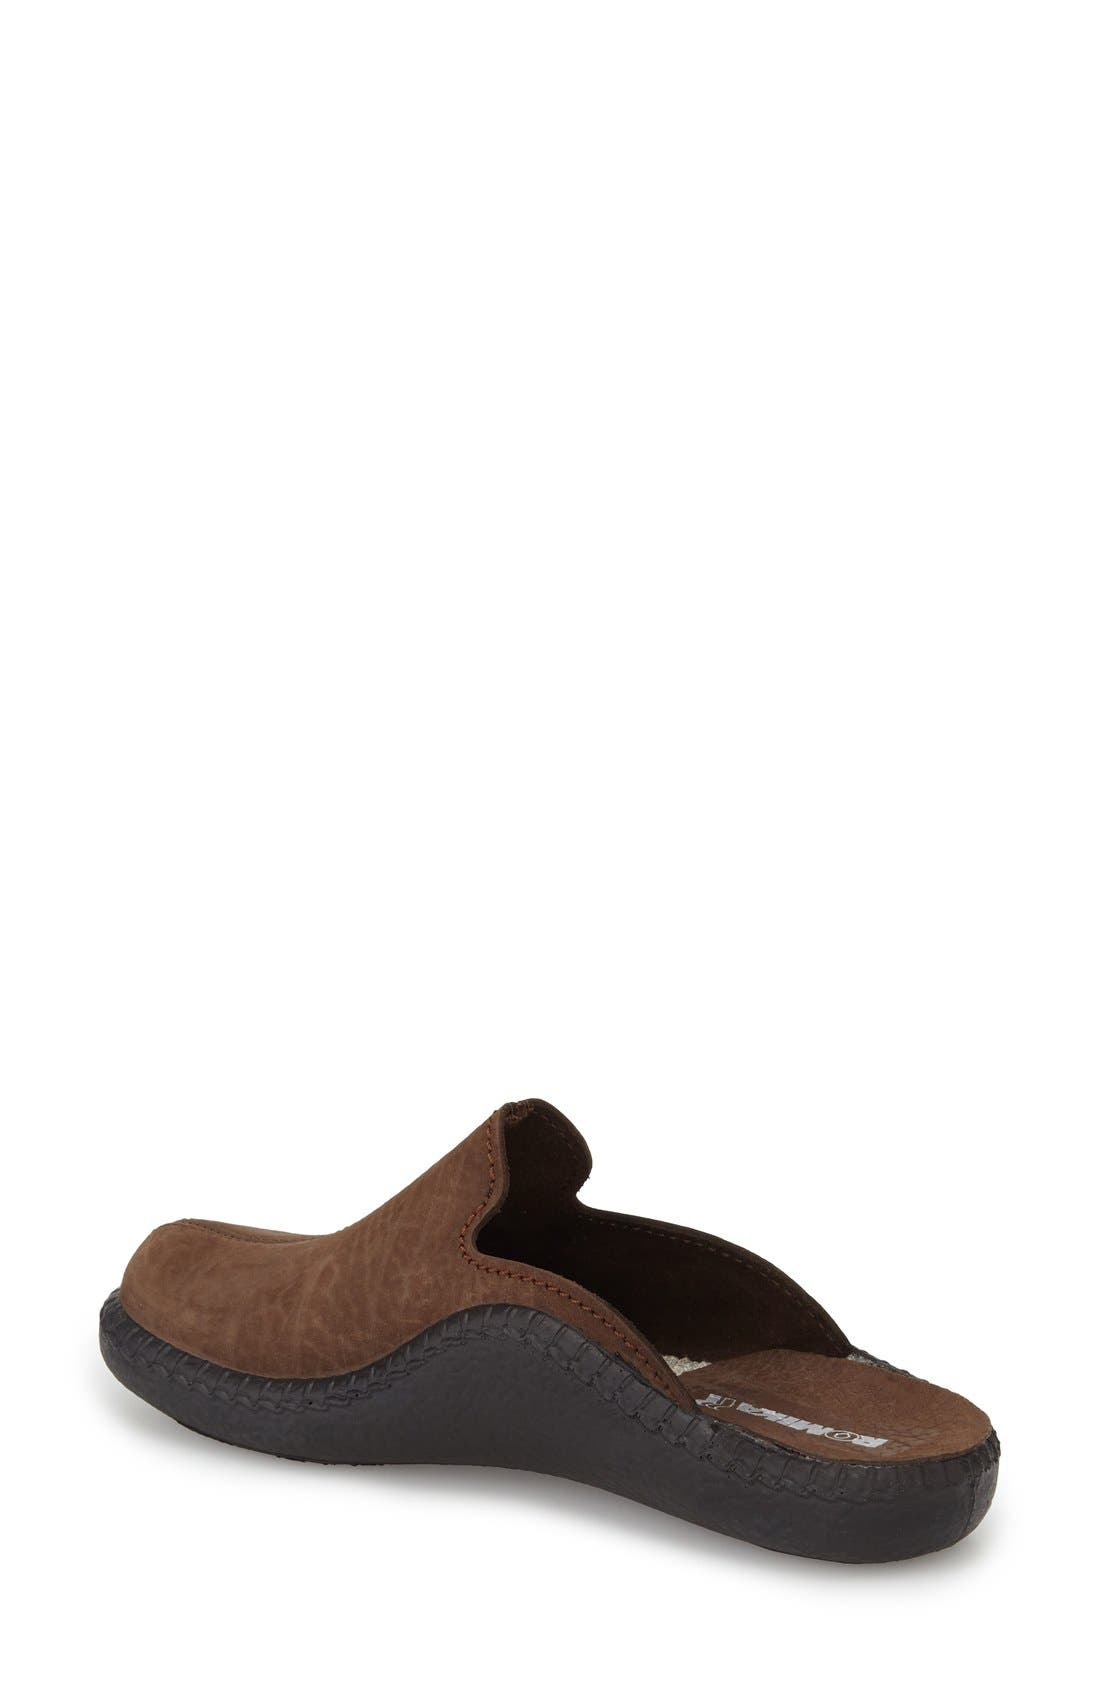 'Mokasso 102' Mule,                             Alternate thumbnail 2, color,                             Brown Leather